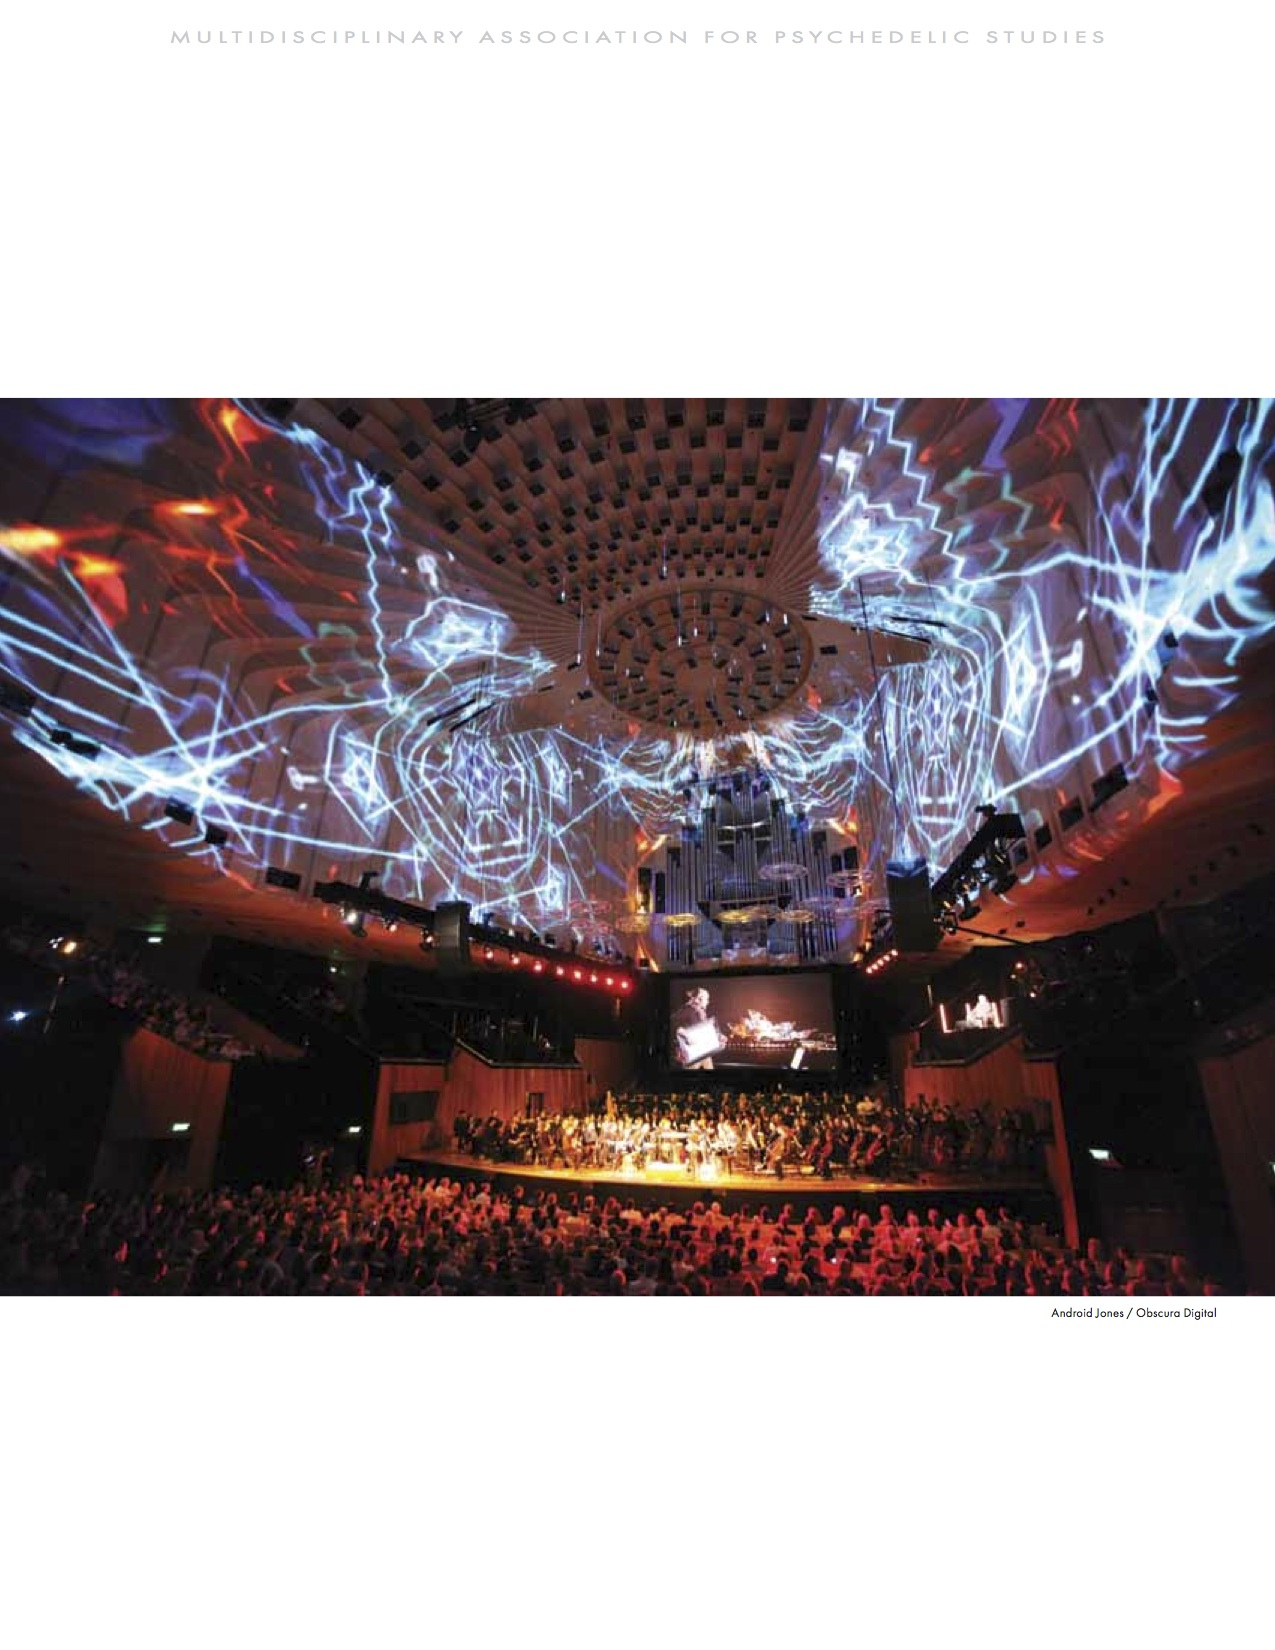 MAPS Bulletin Vol xxii No 1: Spring 2012 - Back Cover Image - Psychedelic Art - Digital Projection, Sydney Opera House (Interior) by Android Jones / Obscura Digital